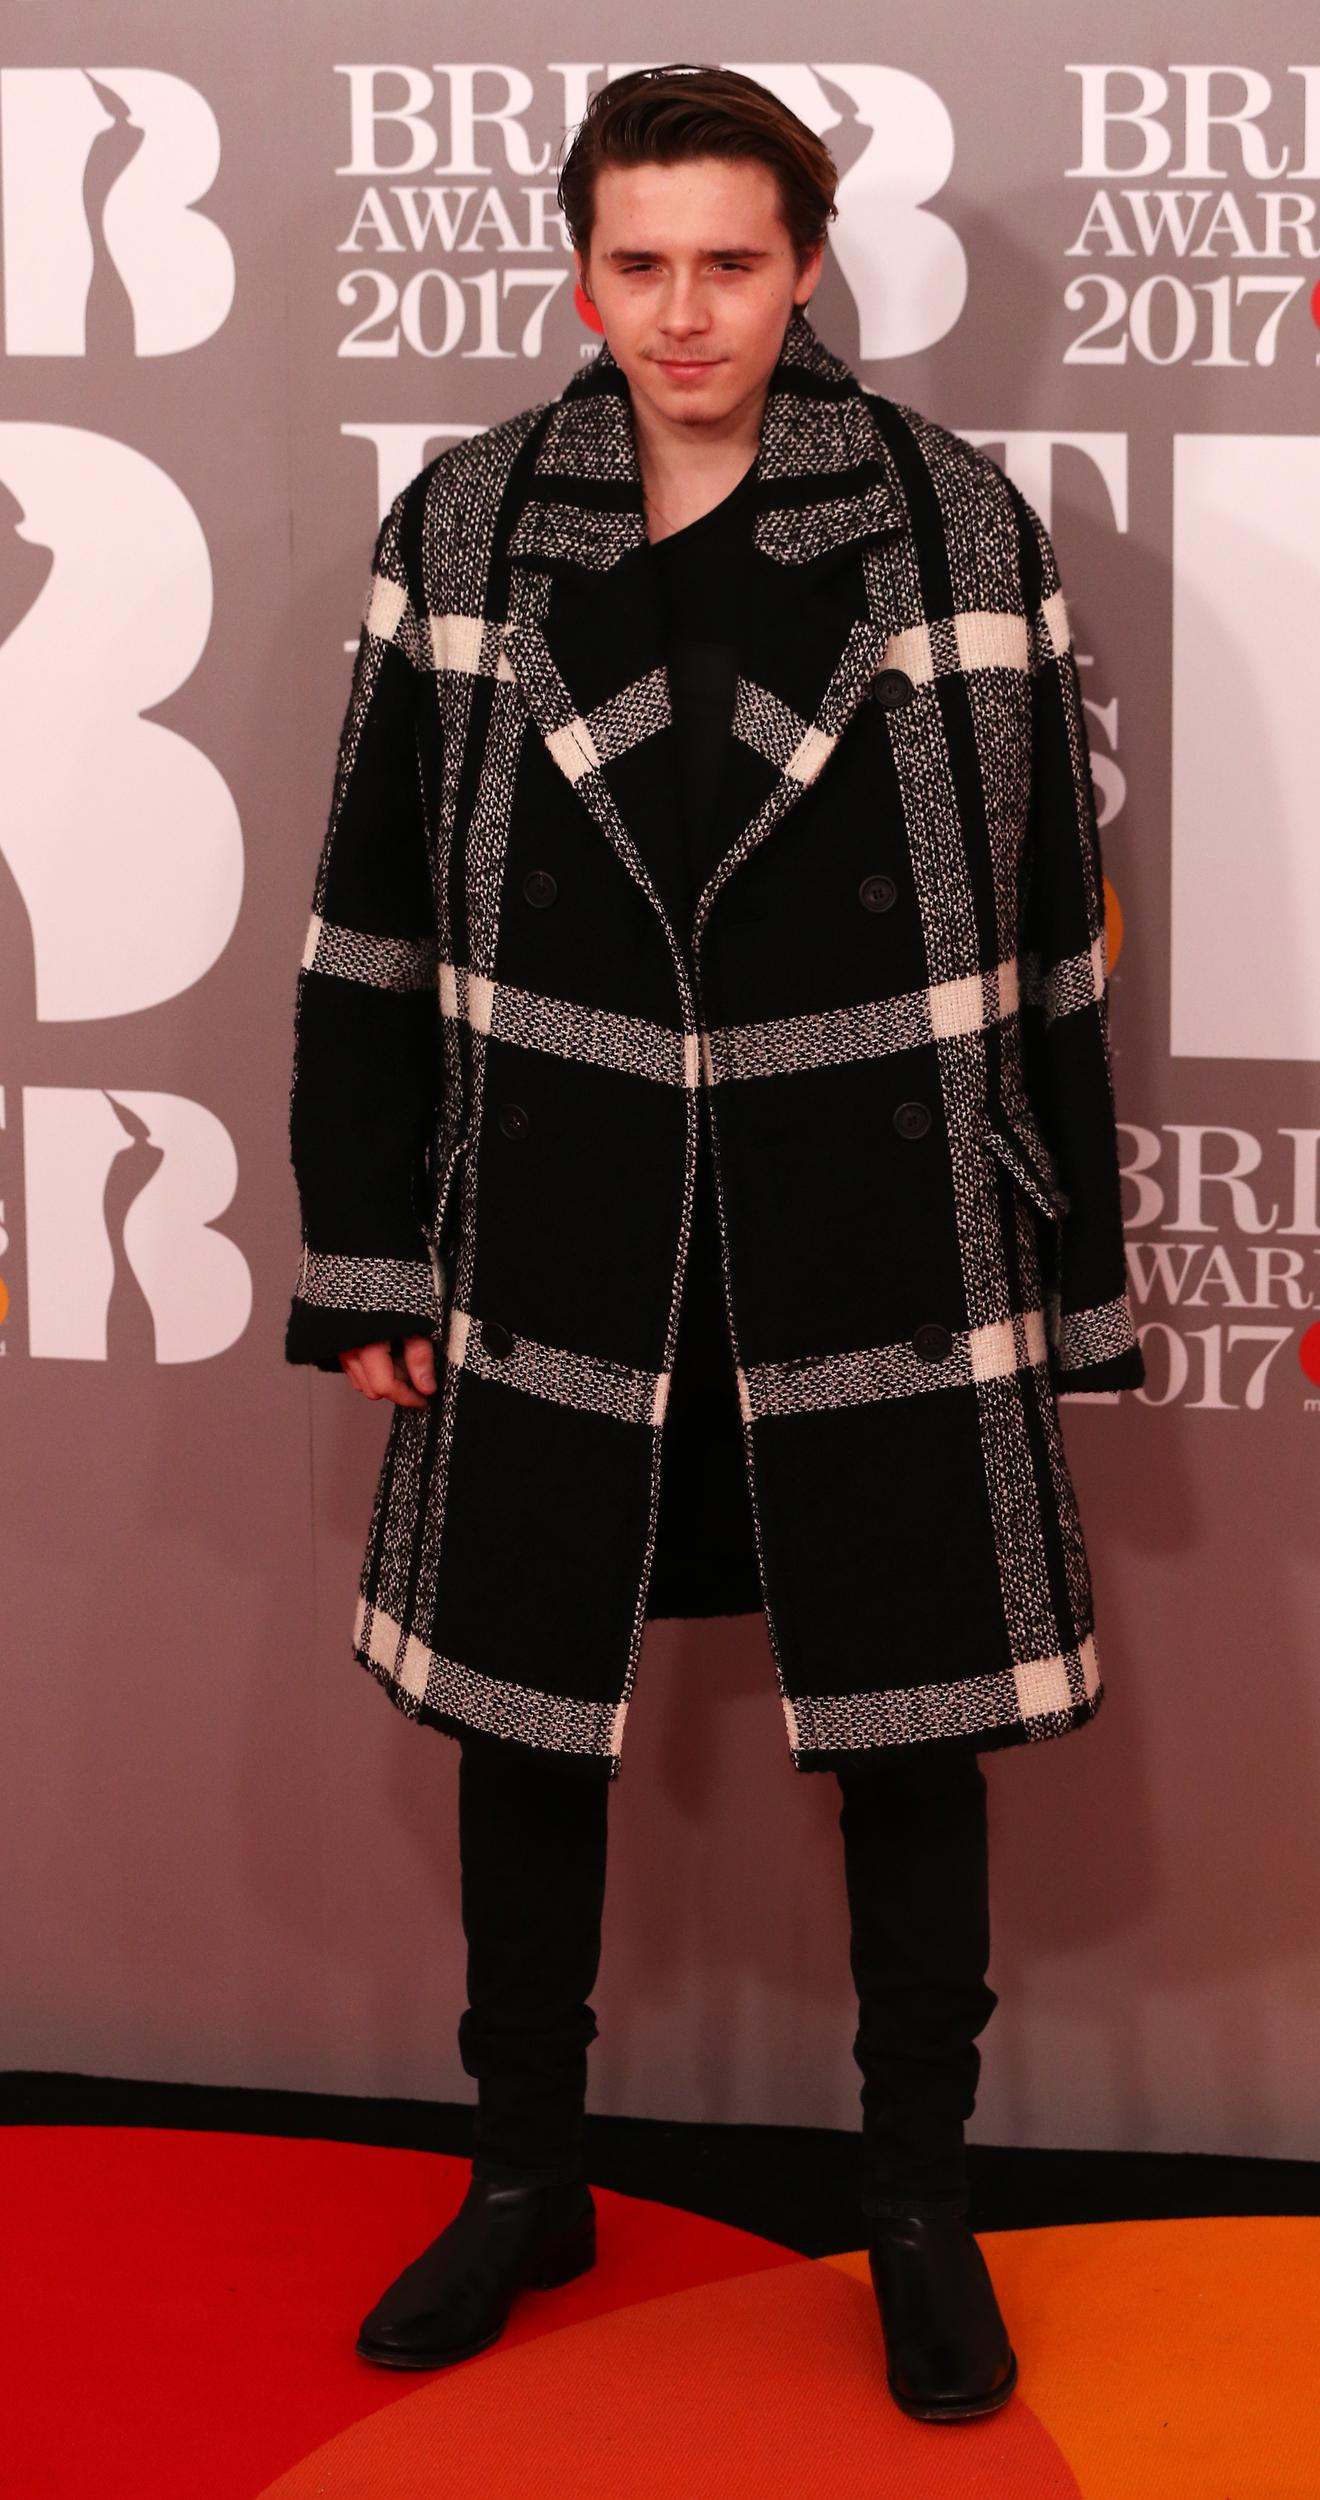 Brooklyn Beckham arrives for the Brit Awards at the O2 Arena in London, Britain, February 22, 2017.  REUTERS/Neil Hall EDITORIAL USE ONLY. FOR EDITORIAL USE ONLY. NOT FOR SALE FOR MARKETING OR ADVERTISING CAMPAIGNS